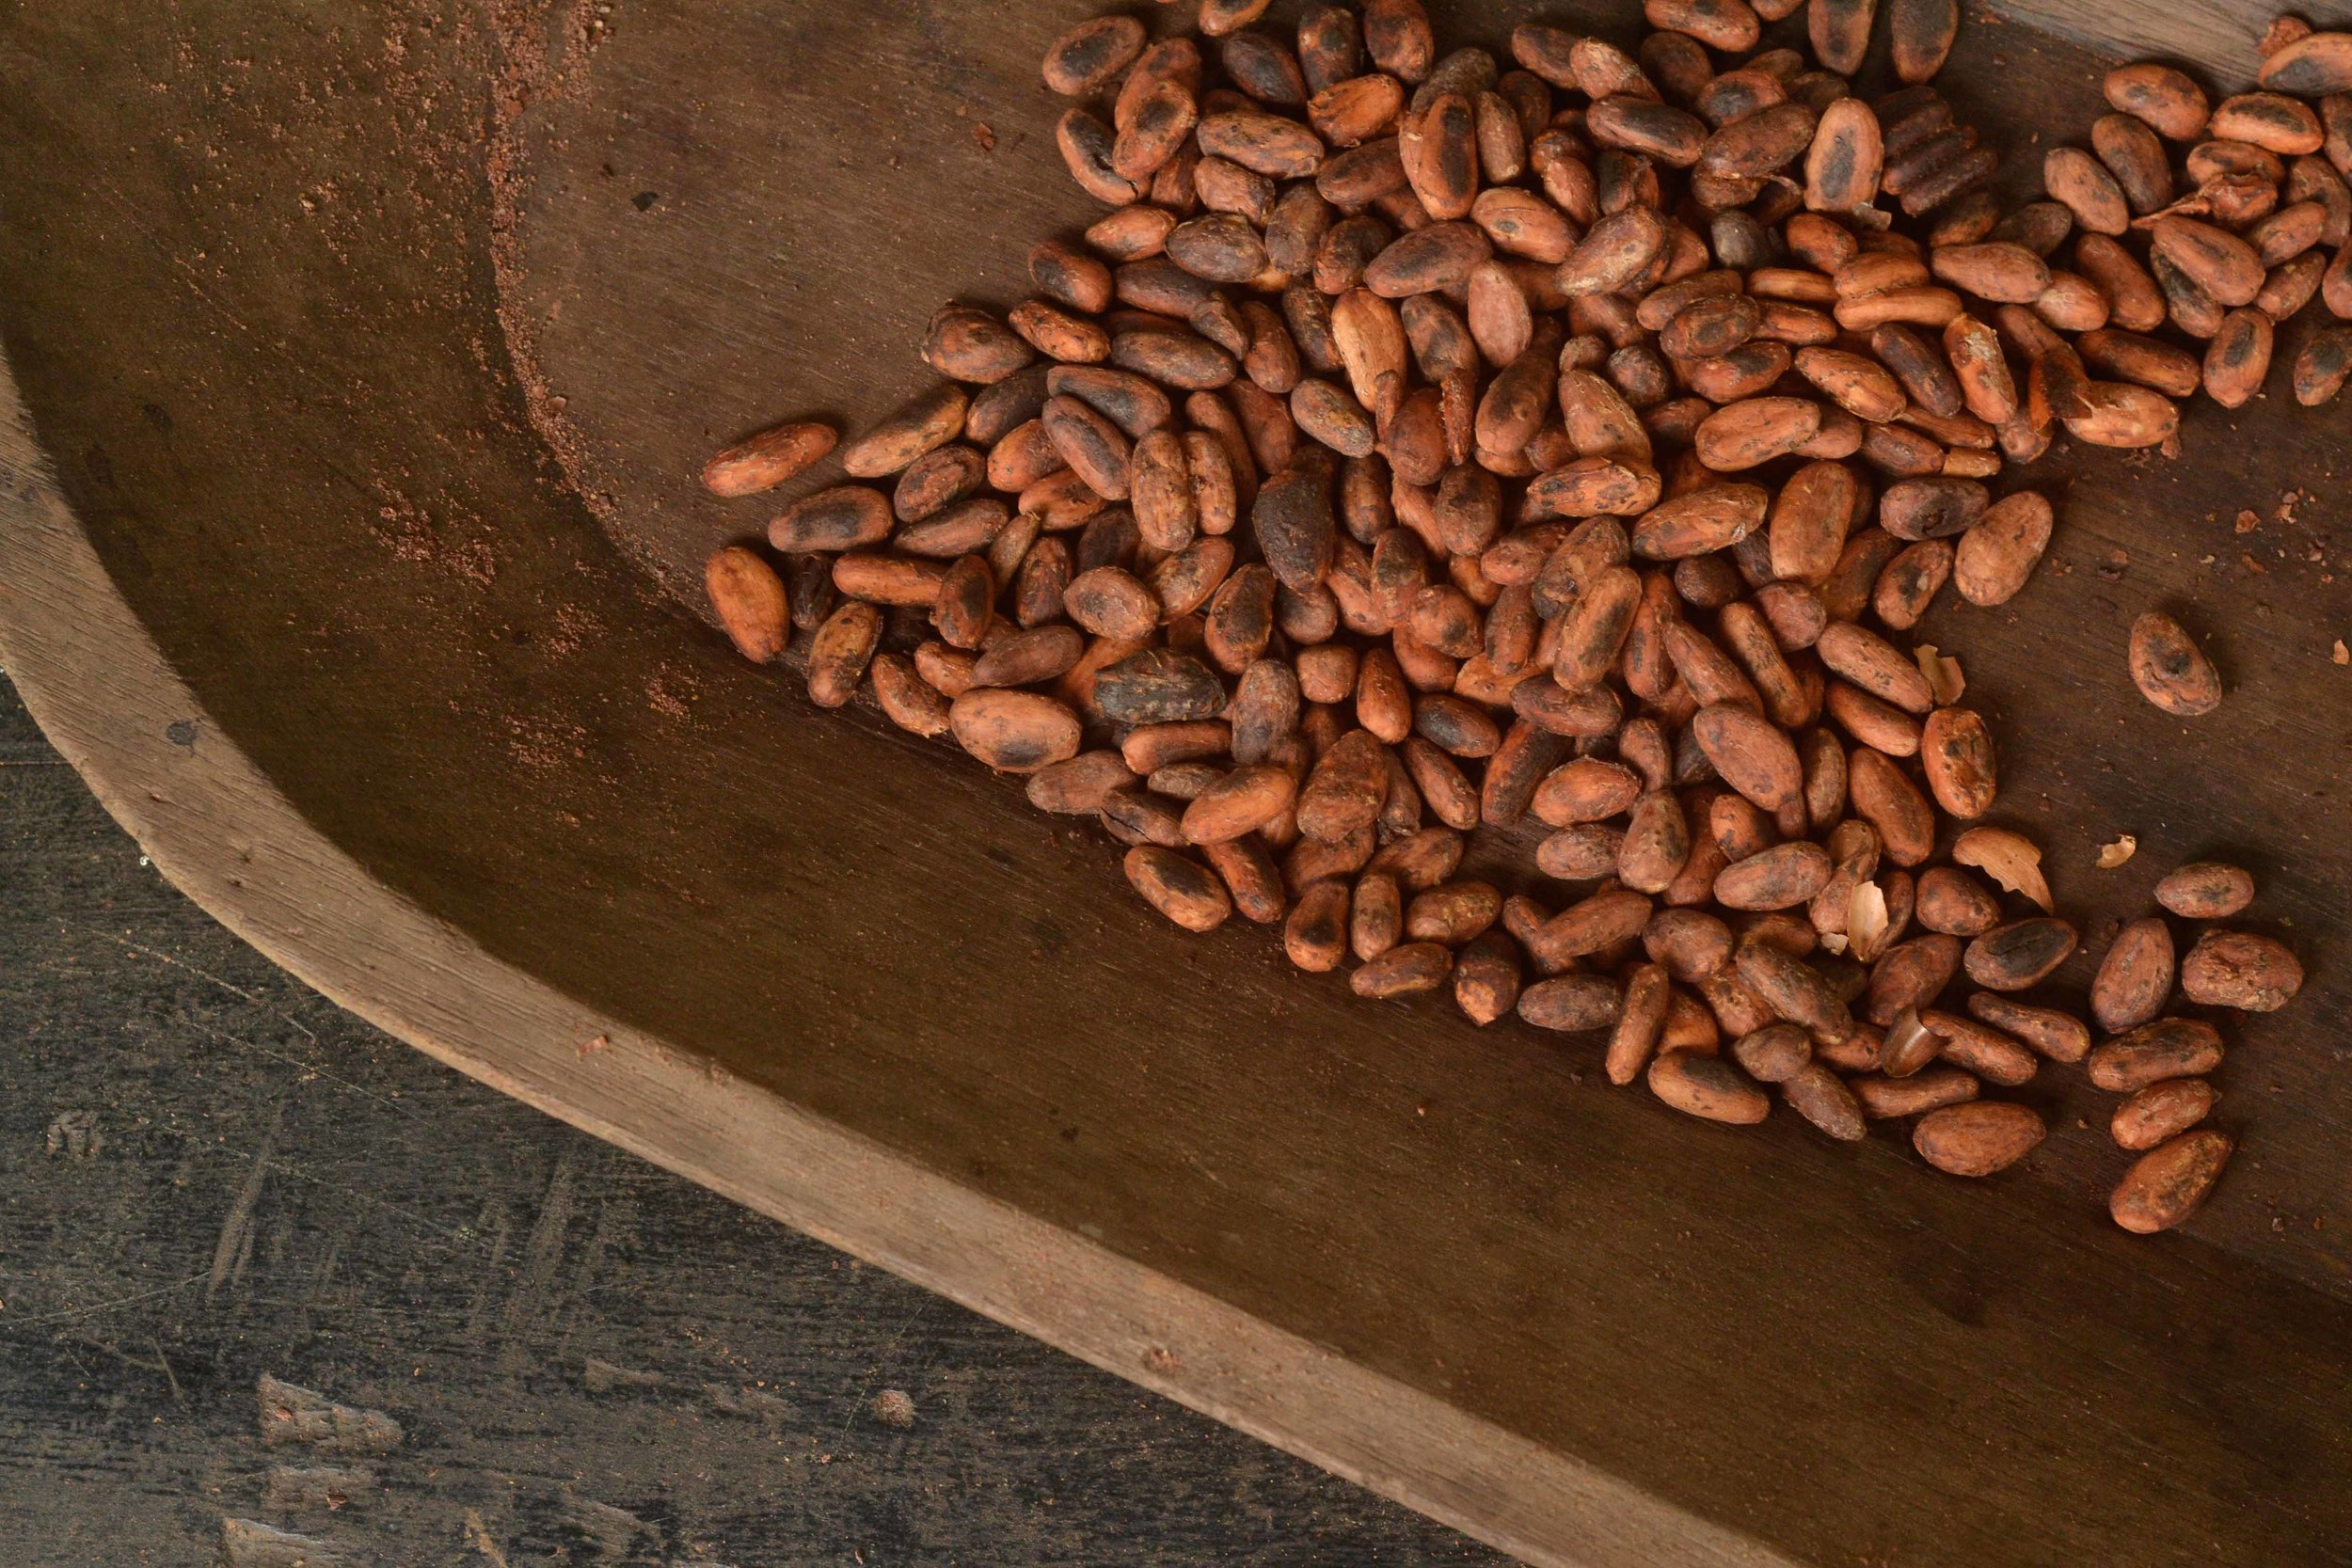 Toasted cacao beans ready to be peeled by hand, one of many labor-intensive steps in the chocolate-making process.